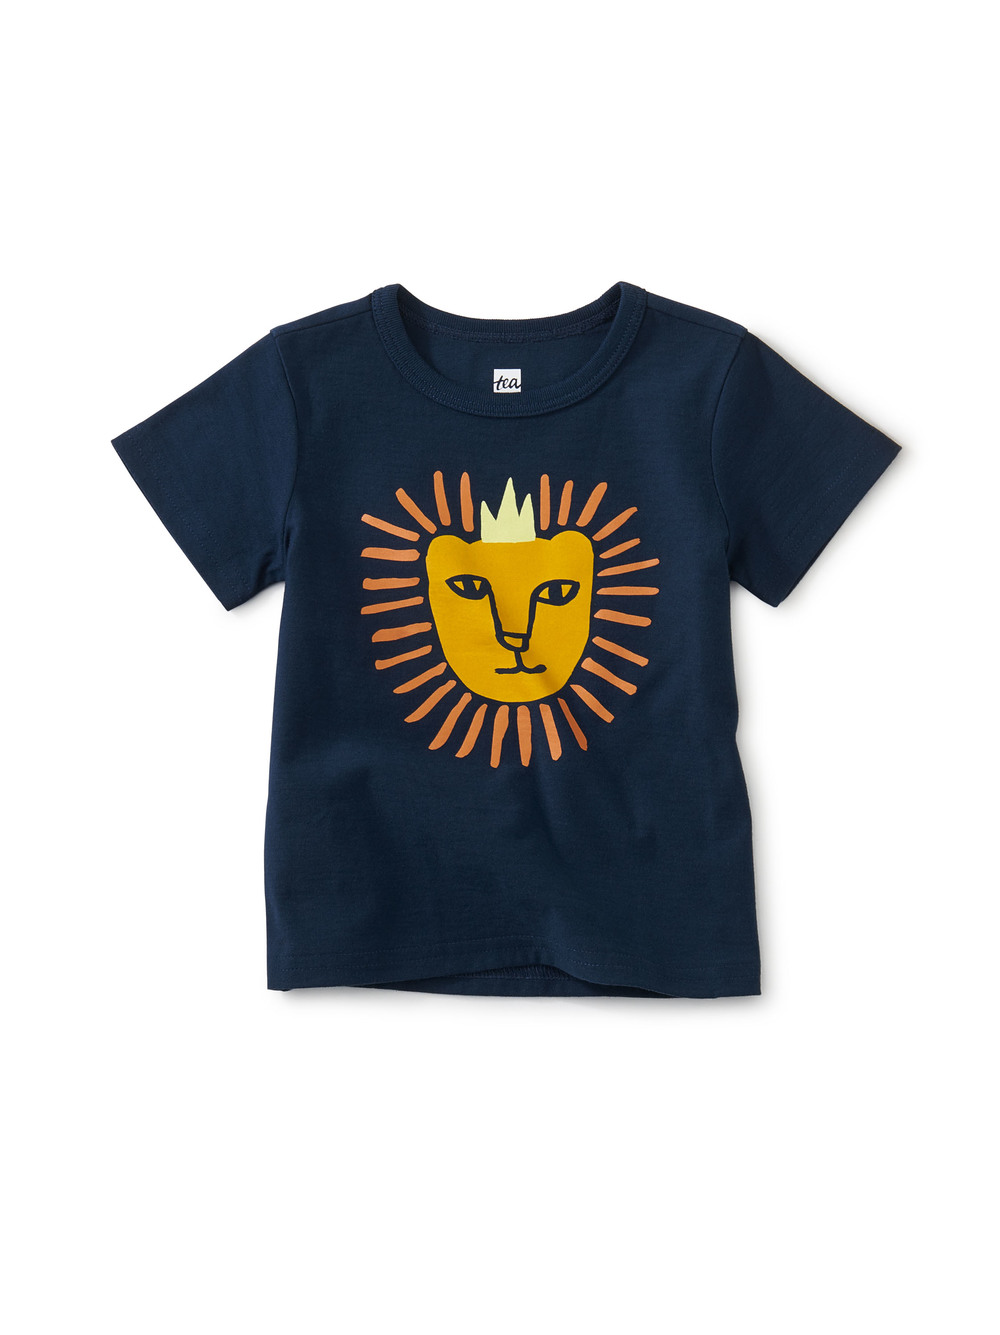 King of the Jungle Graphic Tee